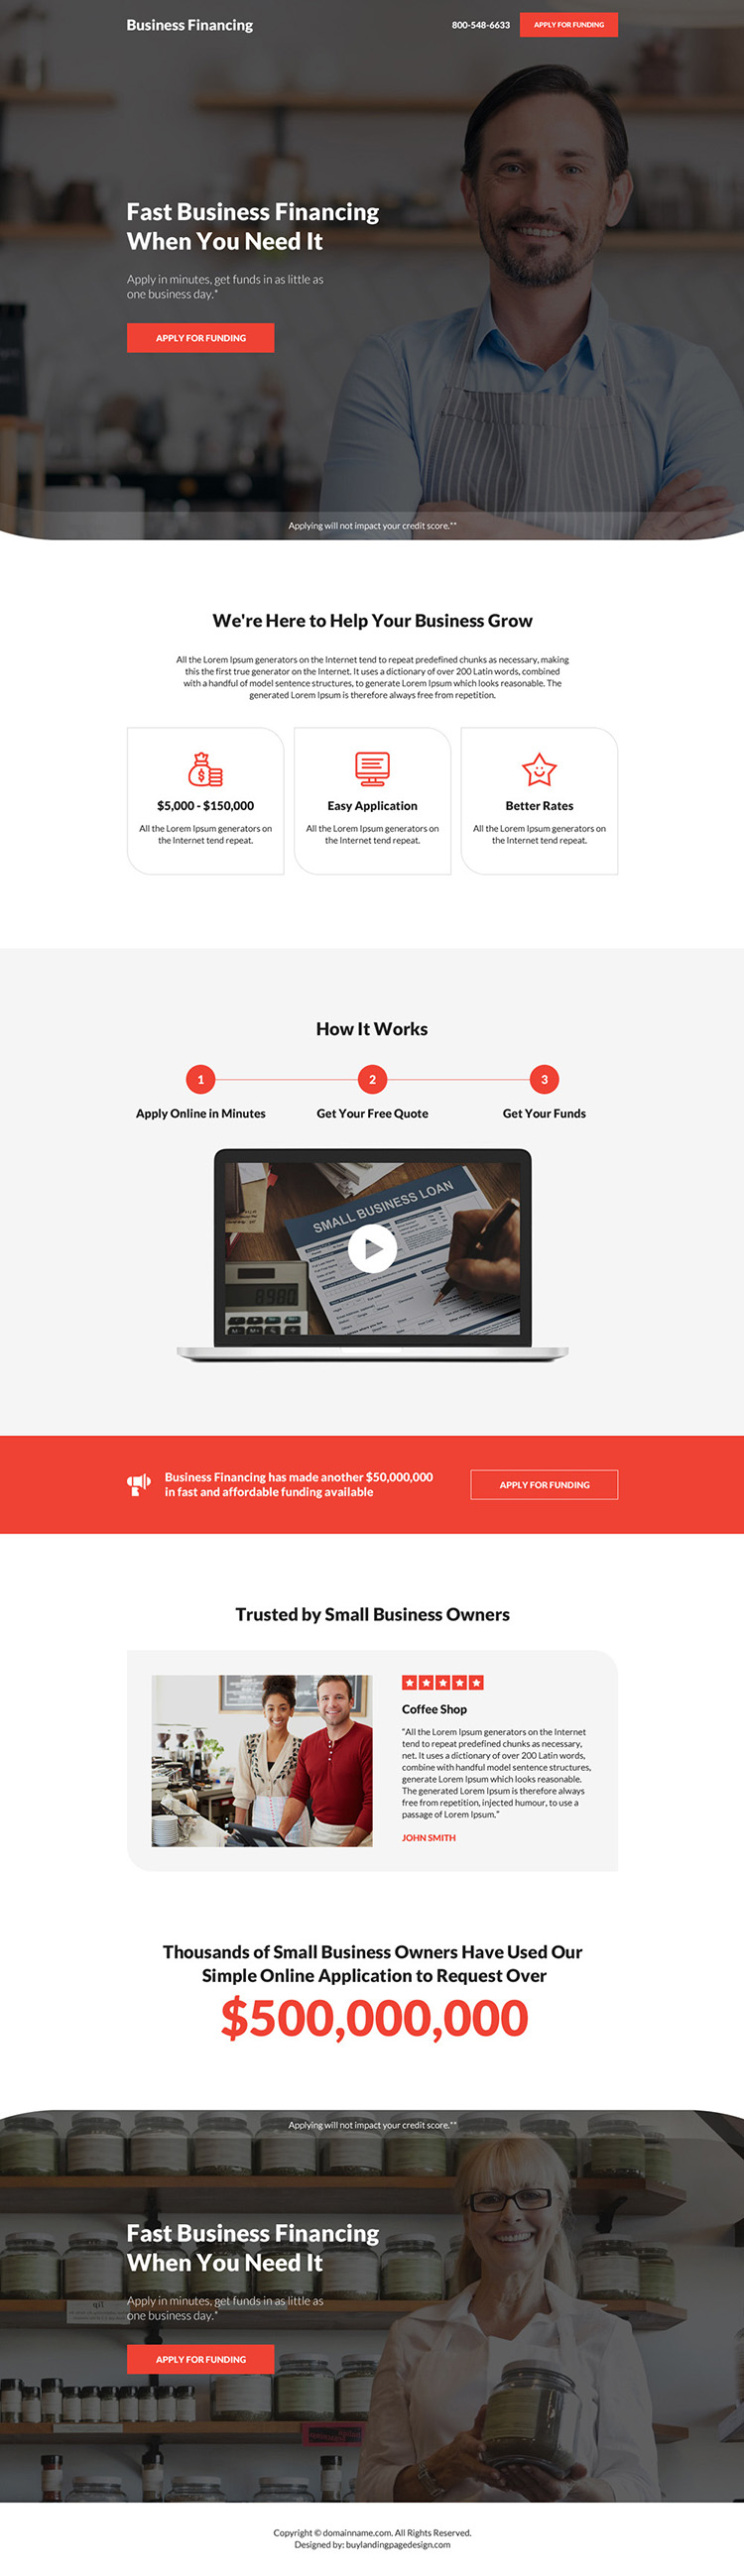 business financing pay per click landing page design